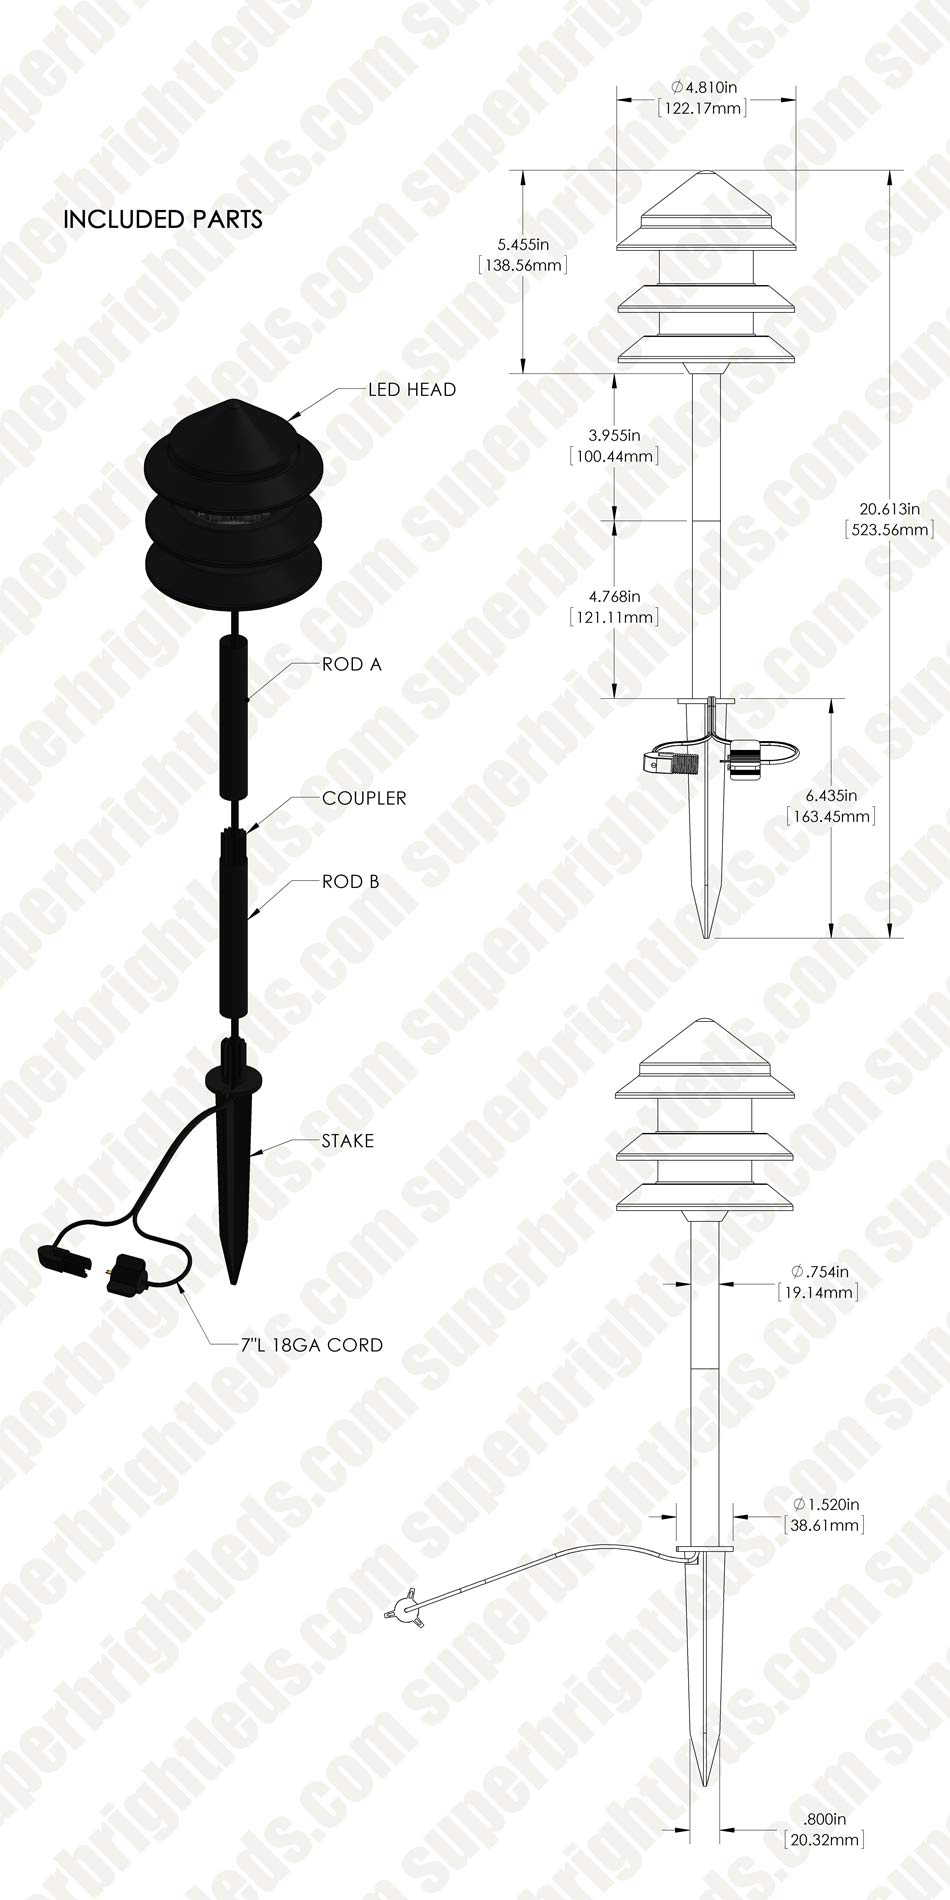 Landscape LED Path Lights w/ Triple Tier Pagoda Style Light Head - 1 Watt